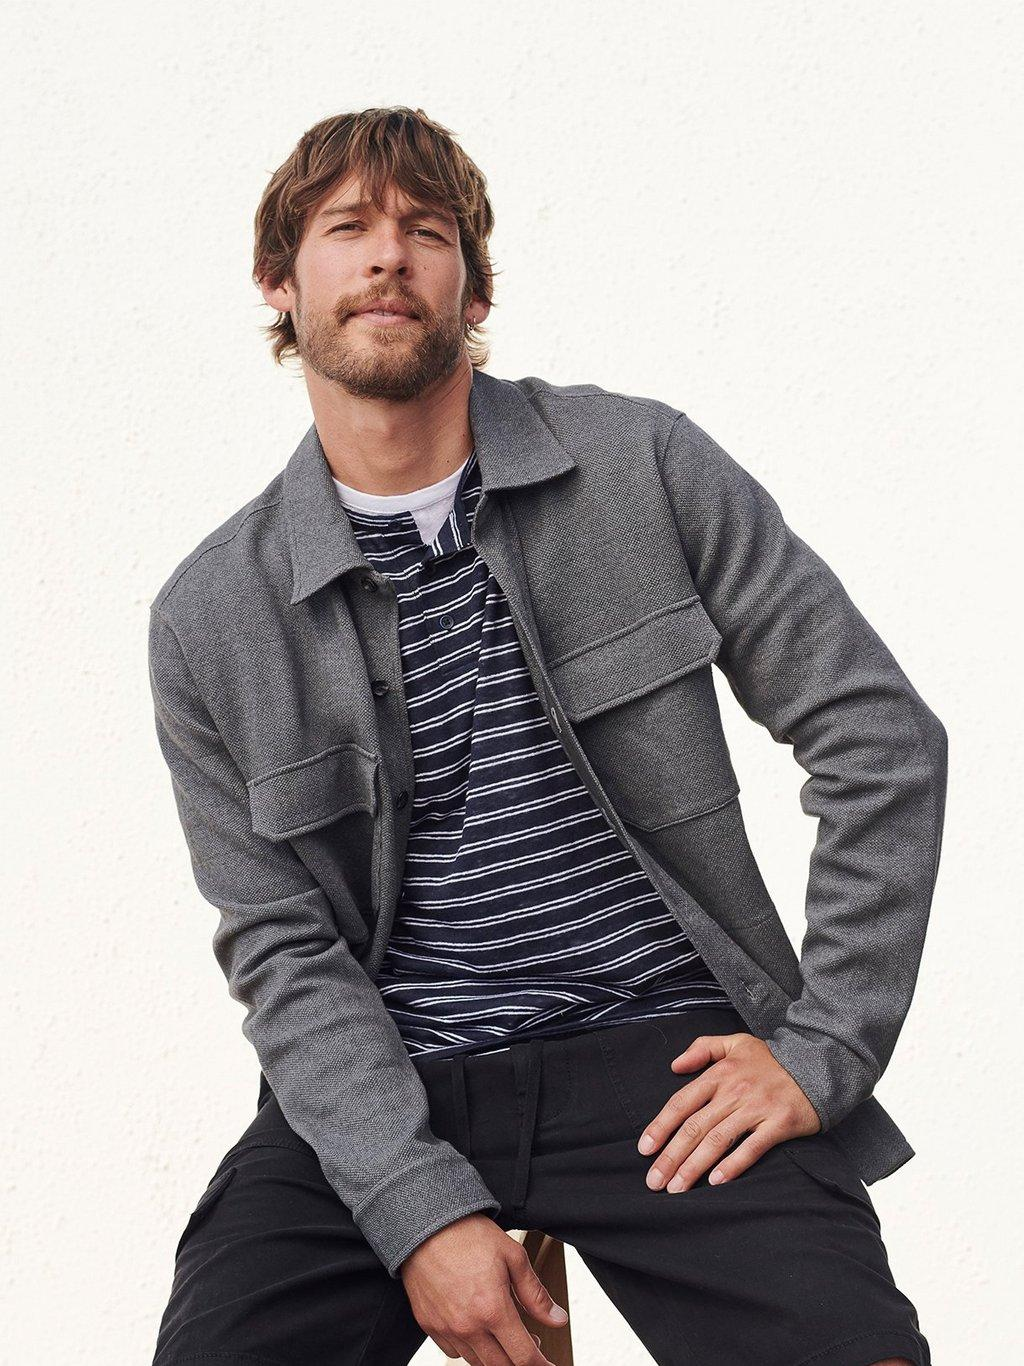 Moss Stitch Shirt Jacket Spring 2020 Collection for Men